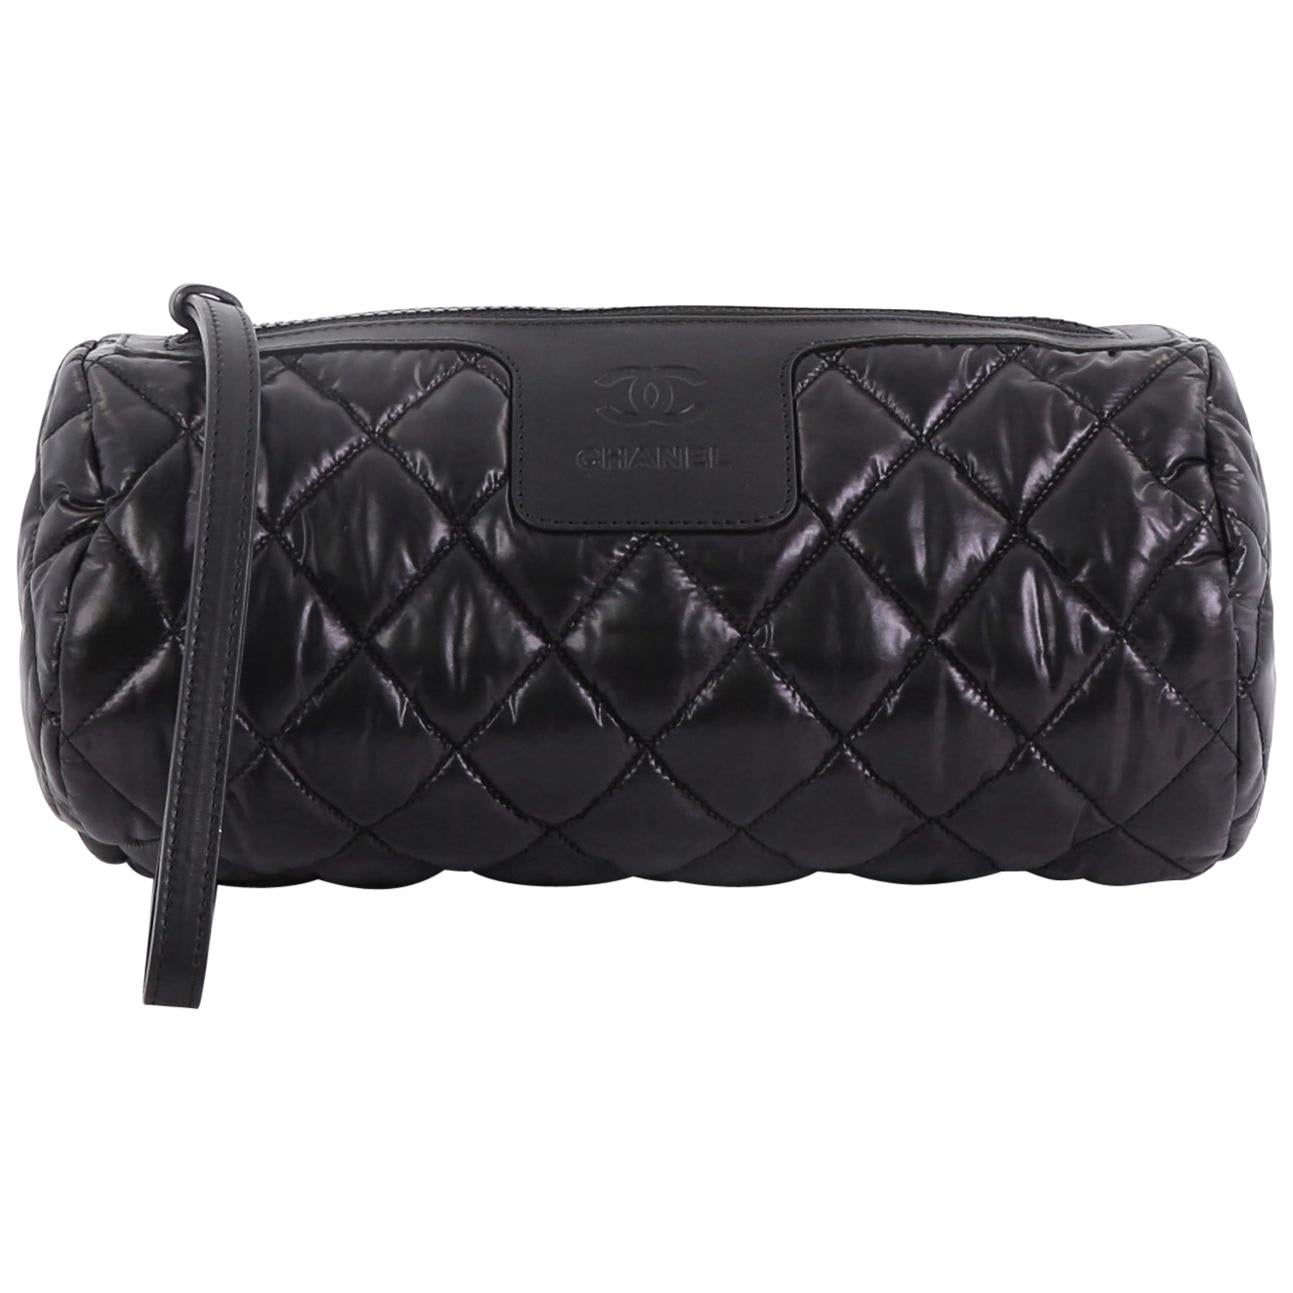 fe128dadd51fcd Vintage Chanel Wallets and Small Accessories - 181 For Sale at 1stdibs -  Page 2